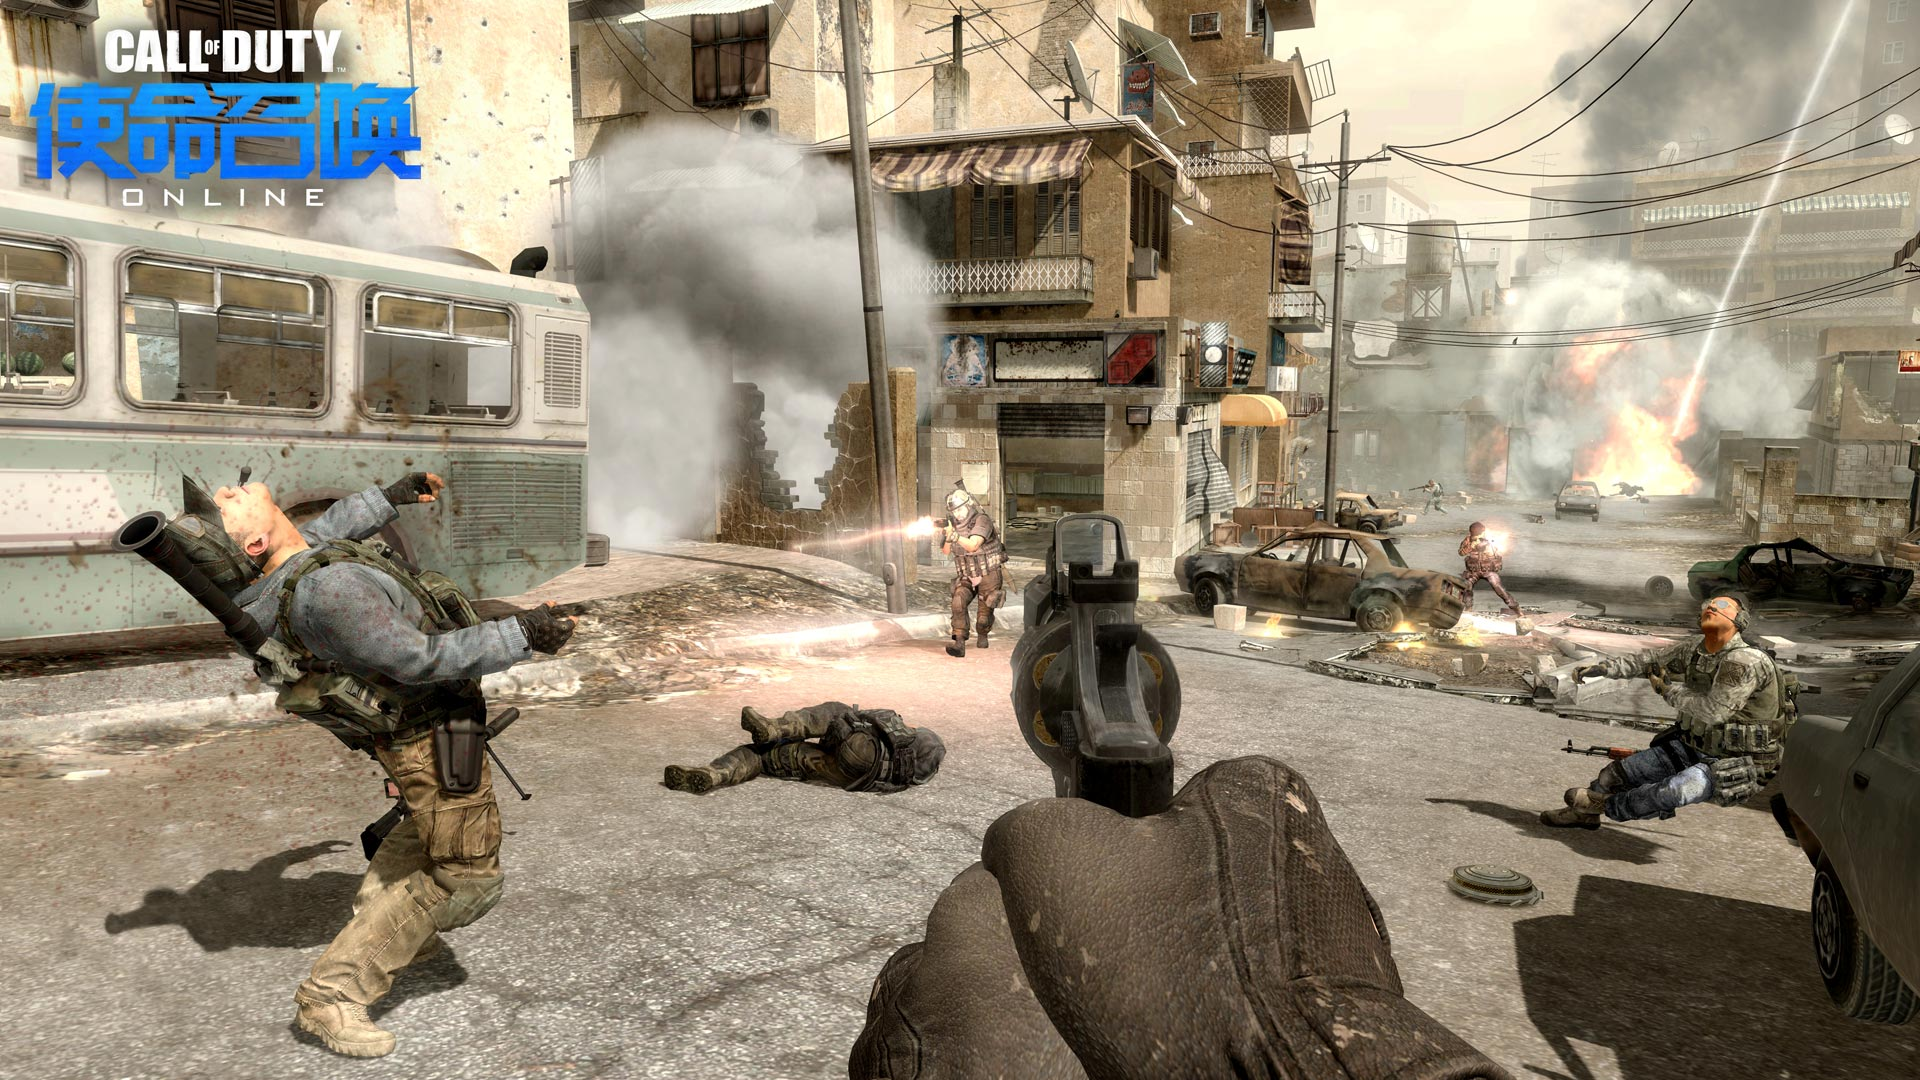 call-of-duty-online-screenshot-007